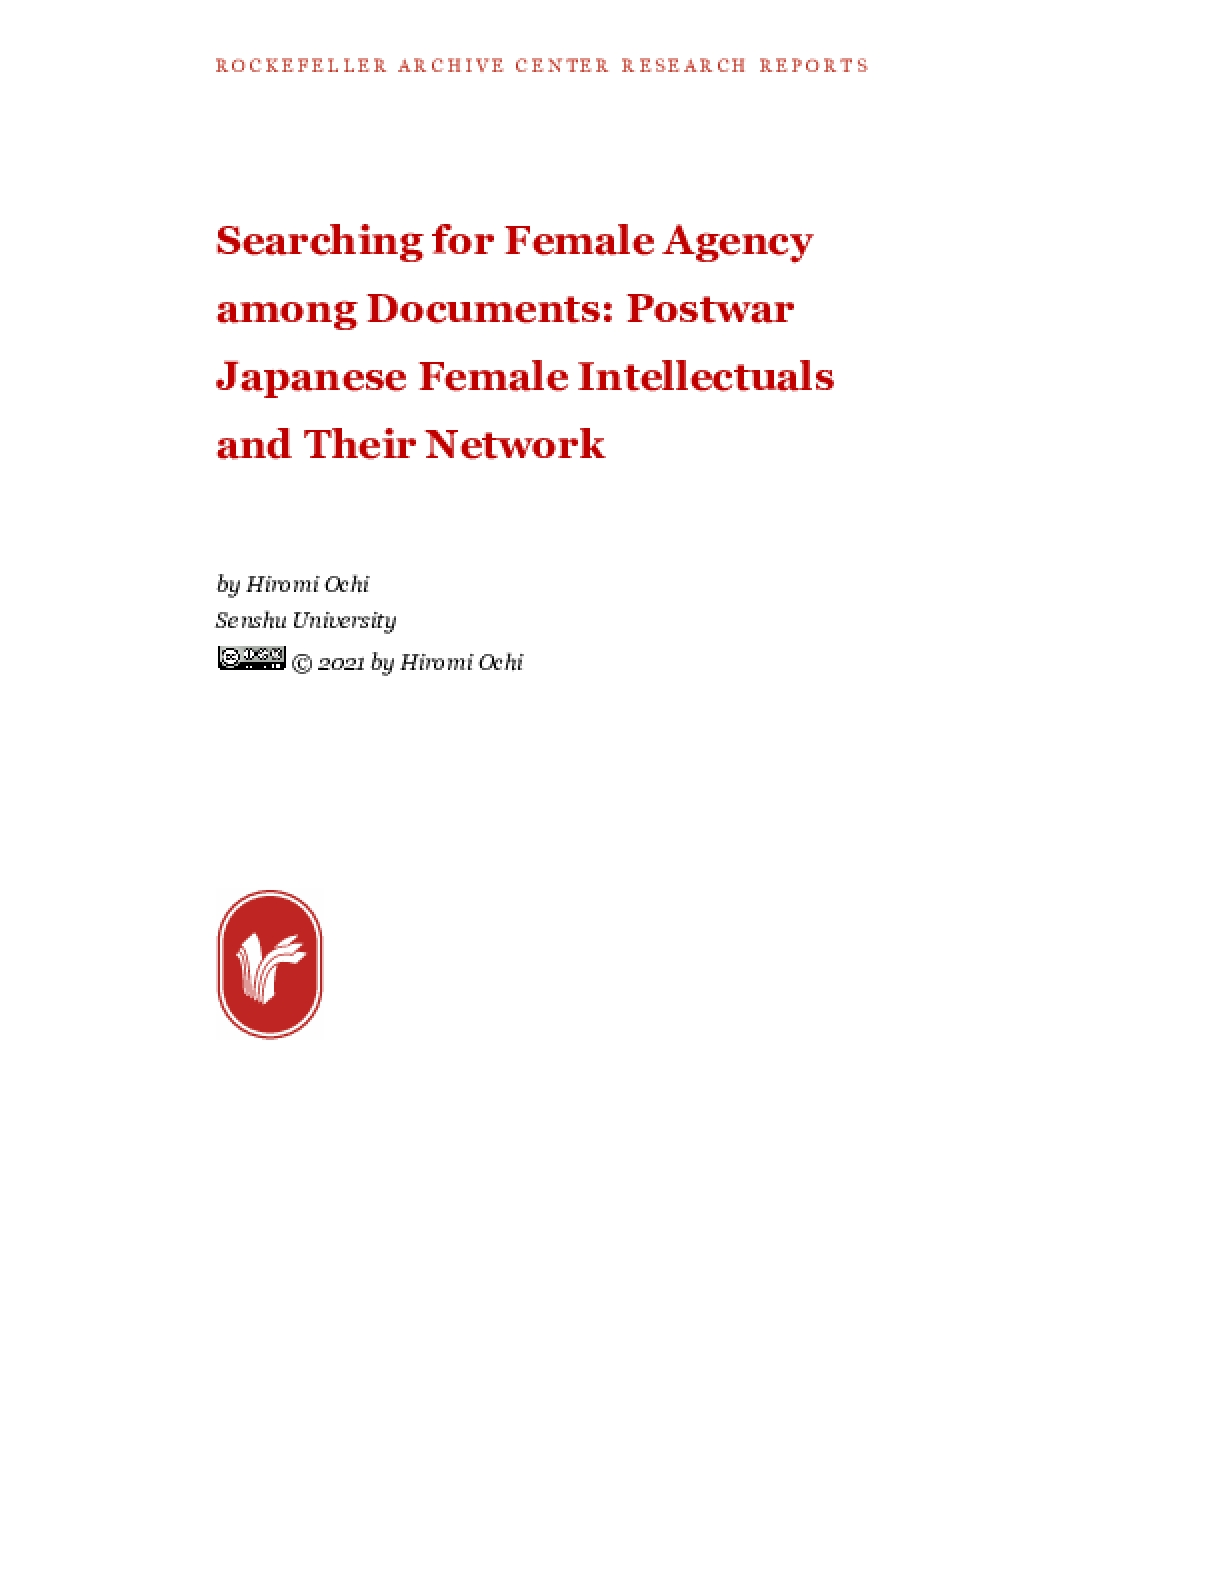 Searching for Female Agency among Documents: Postwar Japanese Female Intellectuals and Their Network